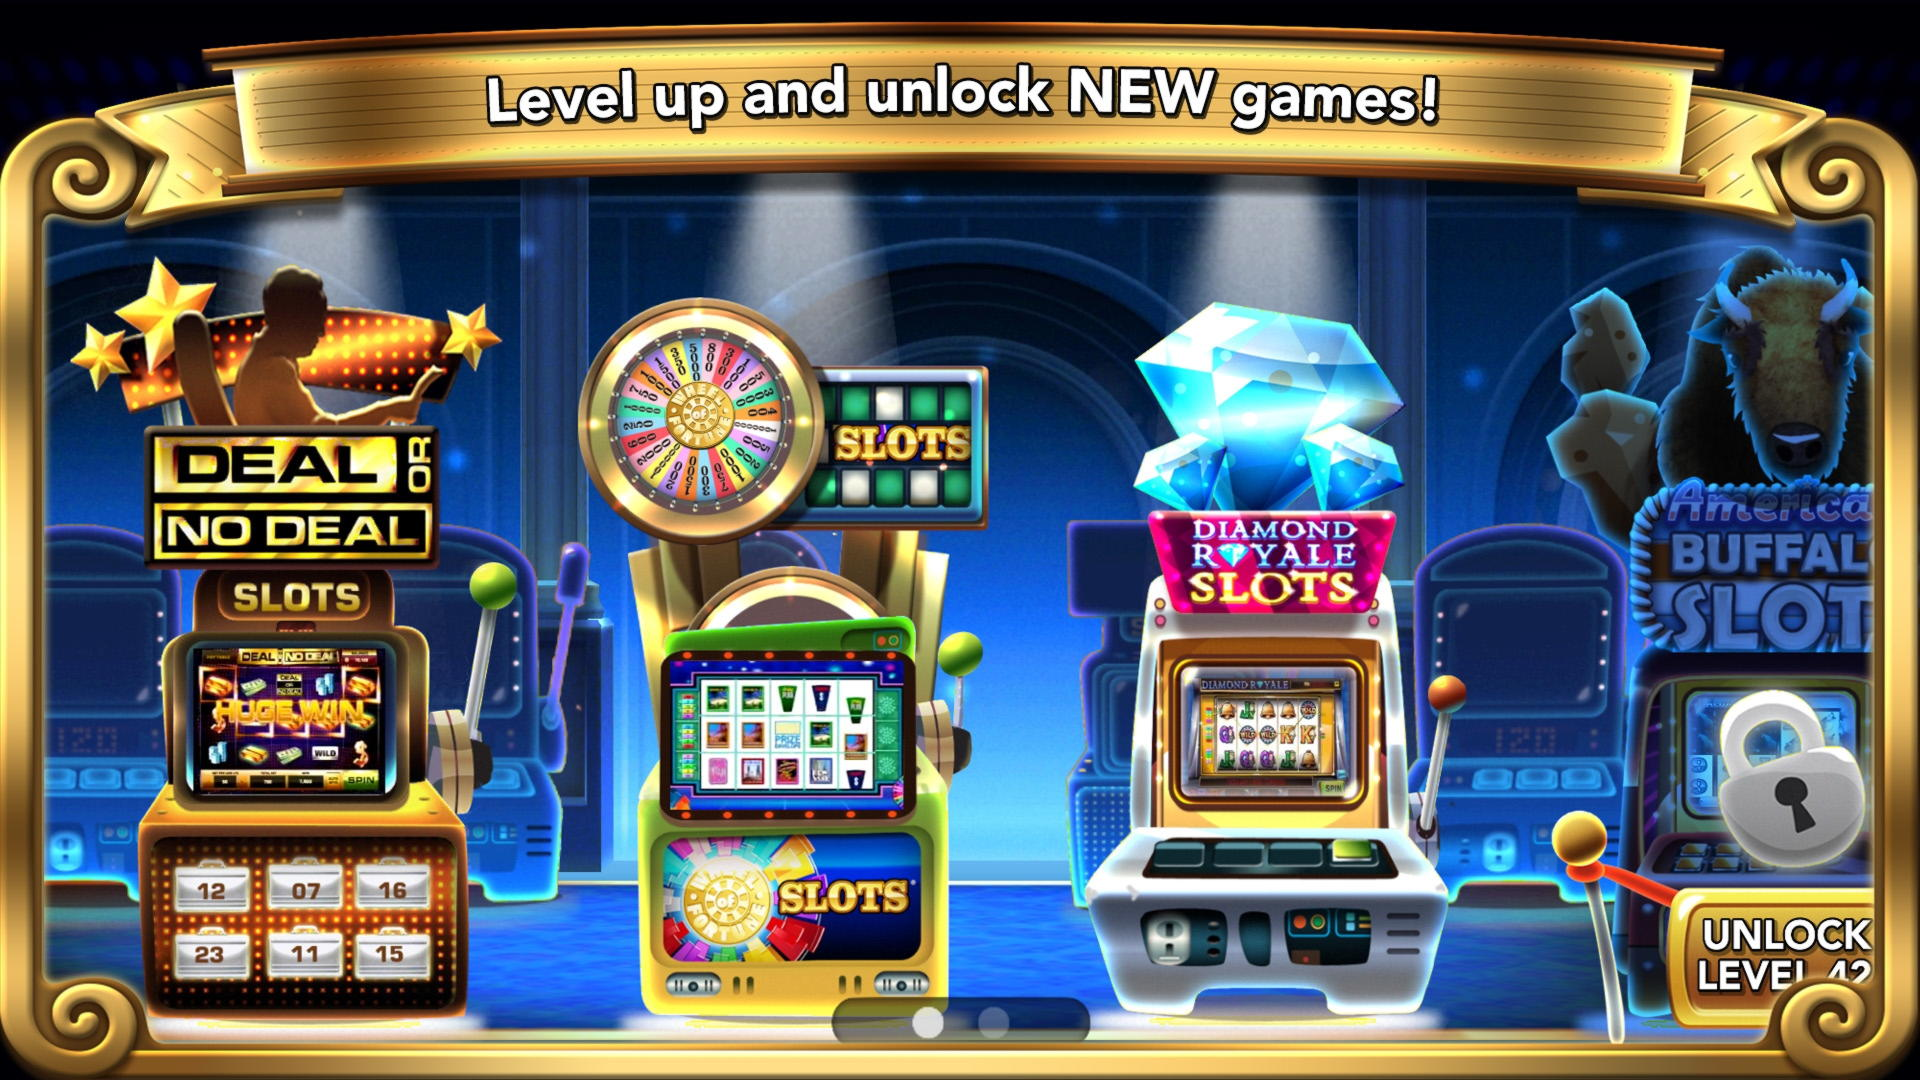 """EURO 160 FREE CHIP CASINO"" - ""Wink Slots"""